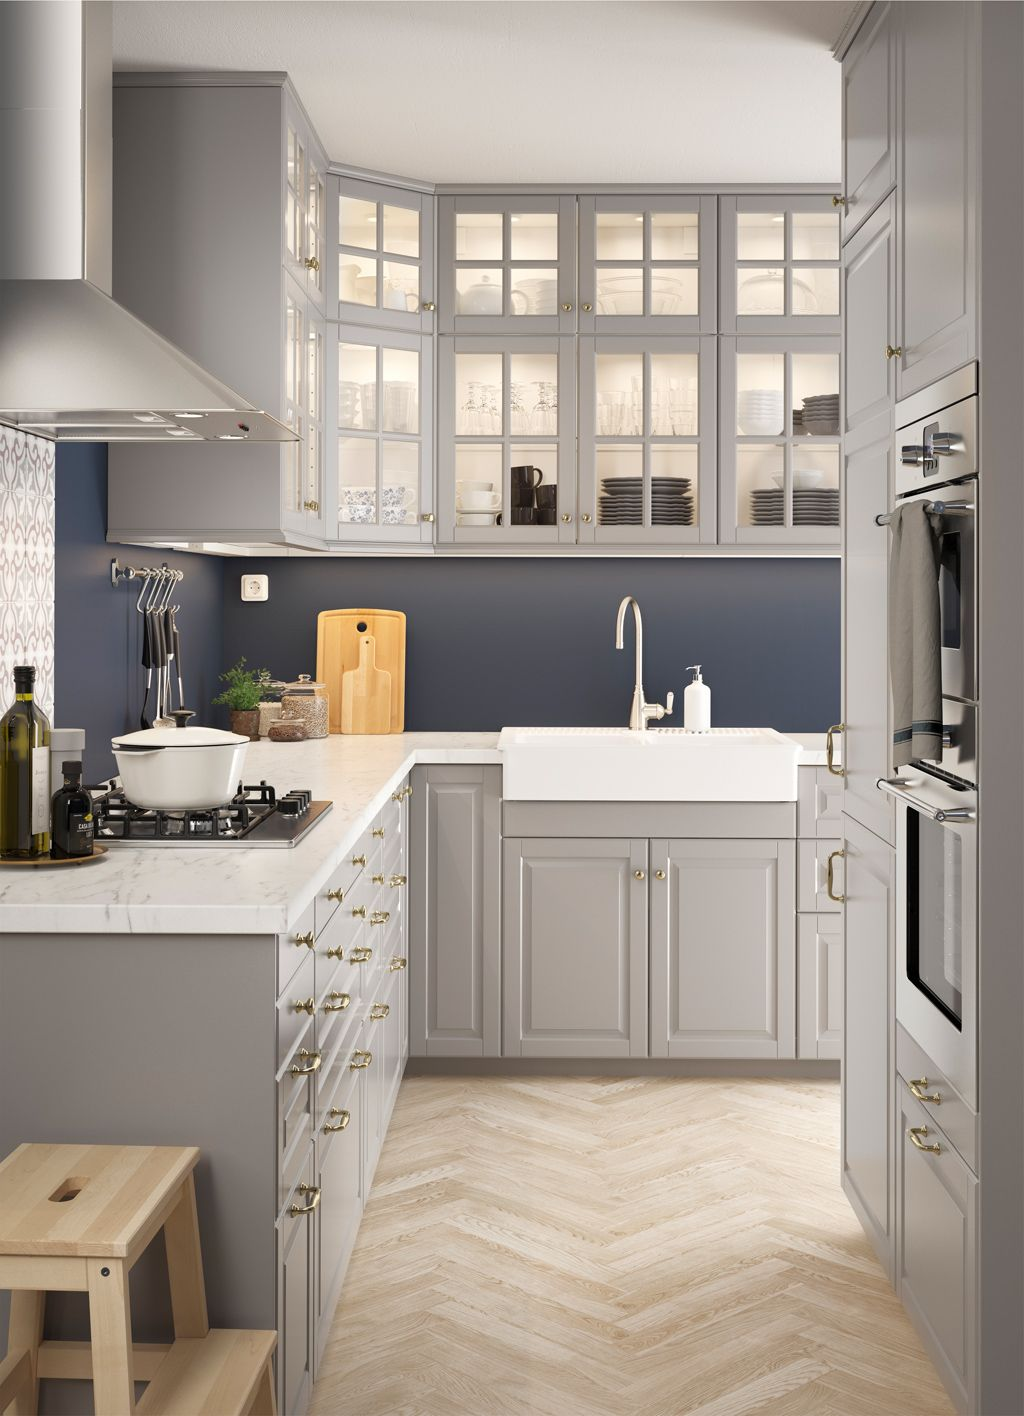 Kitchen design ideas remodels amp photos with gray traditional kitchen - Bodbyn And Marble L Shaped Kitchen With Traditional Wall And Base Cabinets With Grey